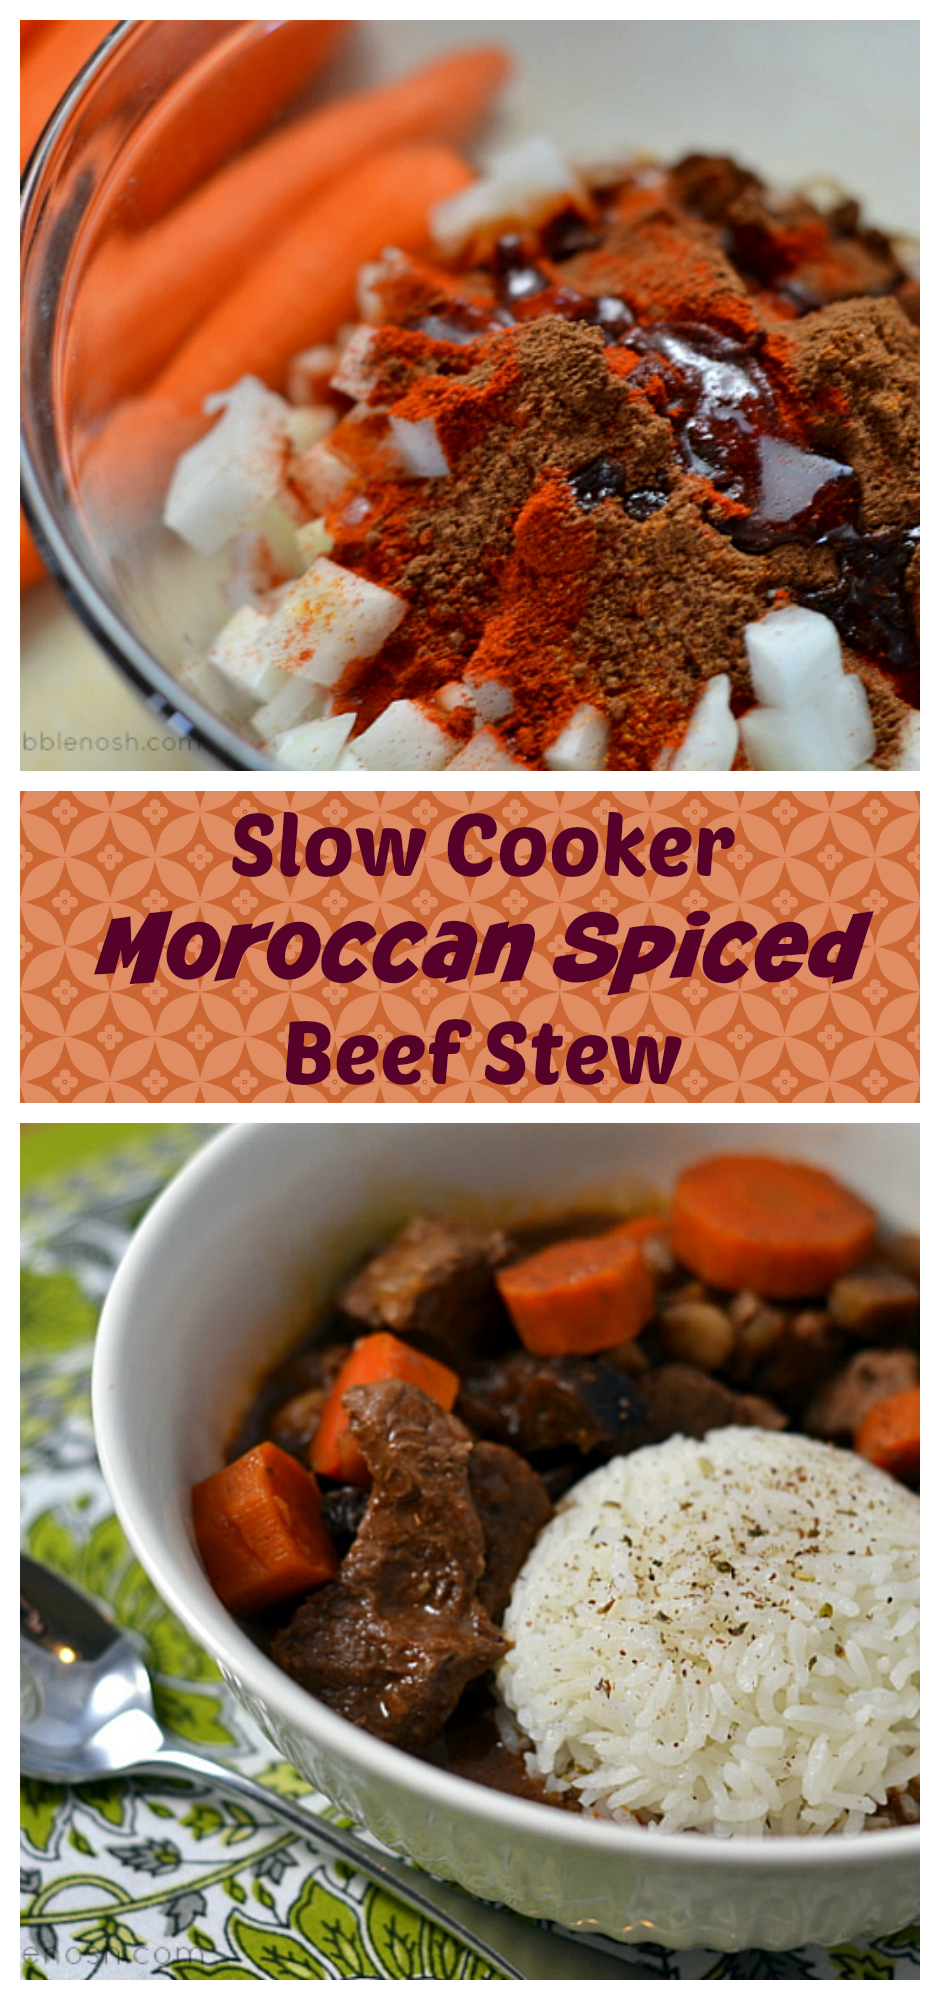 This Slow Cooker Moroccan-Spiced Beef Stew will warm up even your chilliest fall night. Find the recipe at Chew Nibble Nosh.